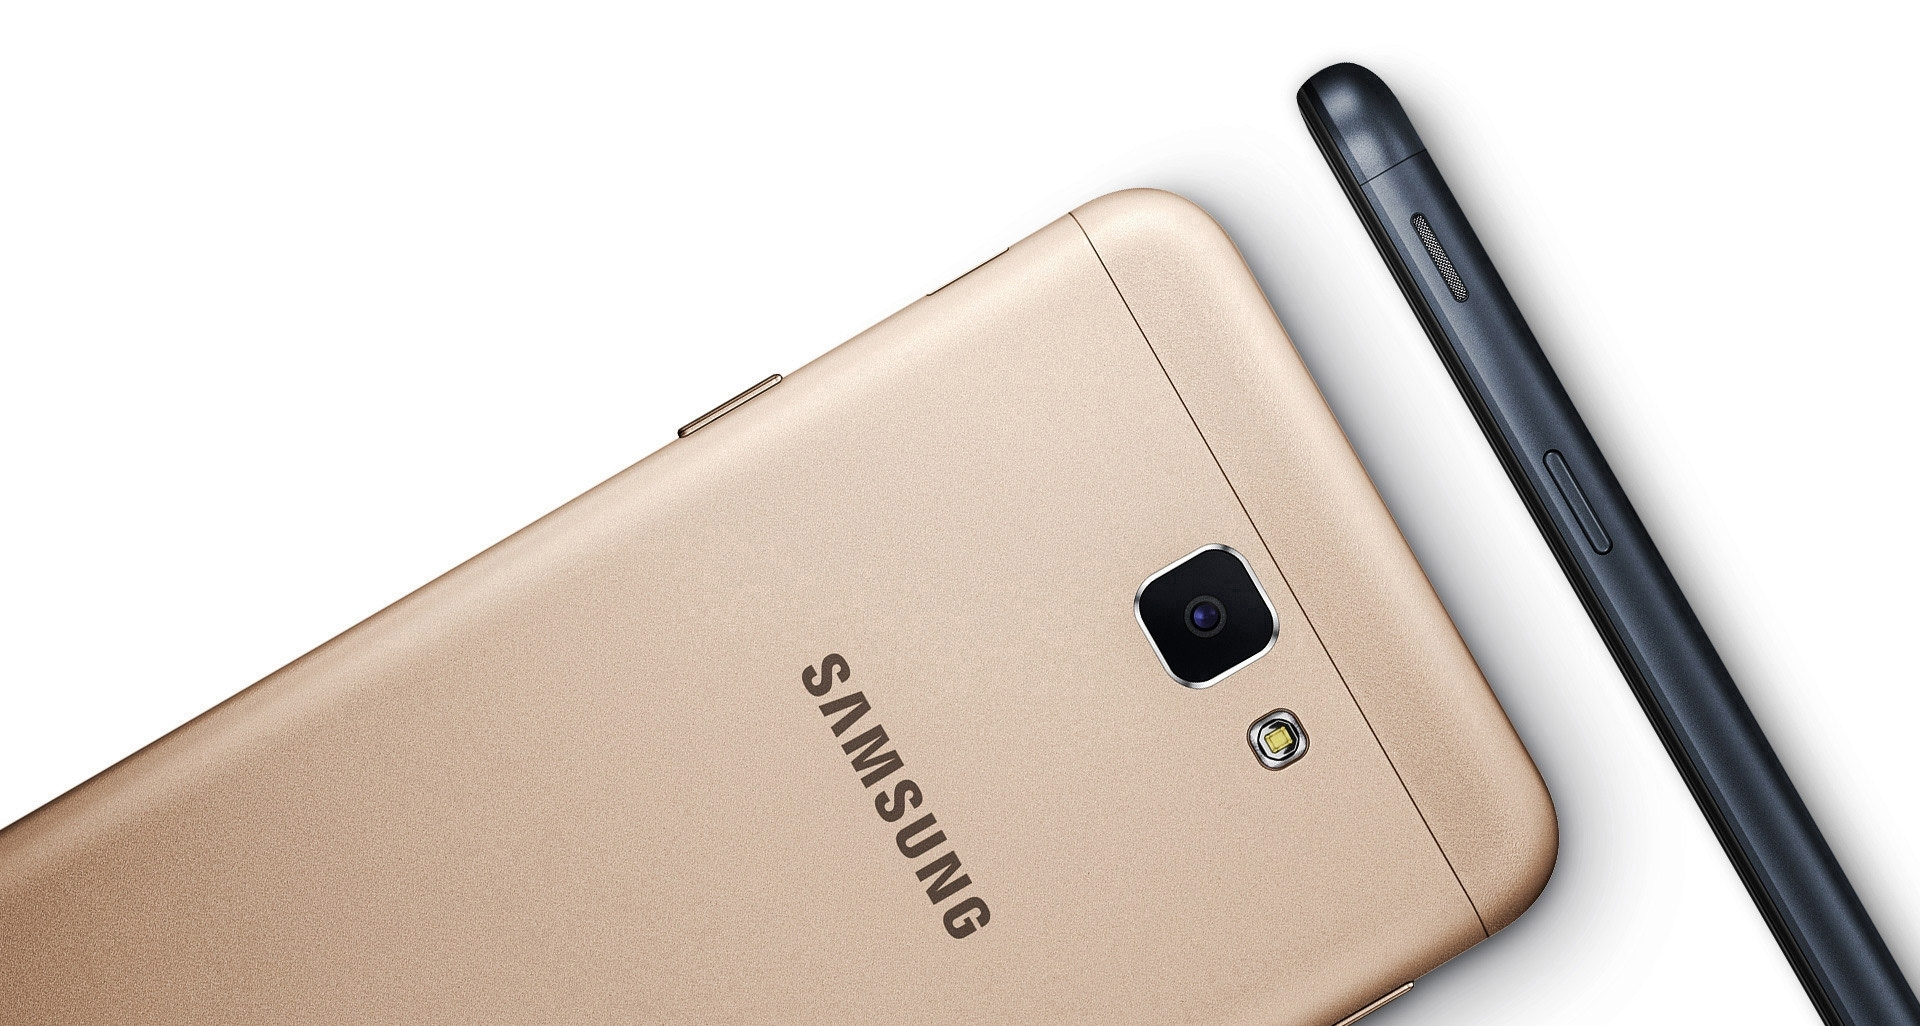 Samsung Galaxy J5 Prime Features - Ultra Slim Design